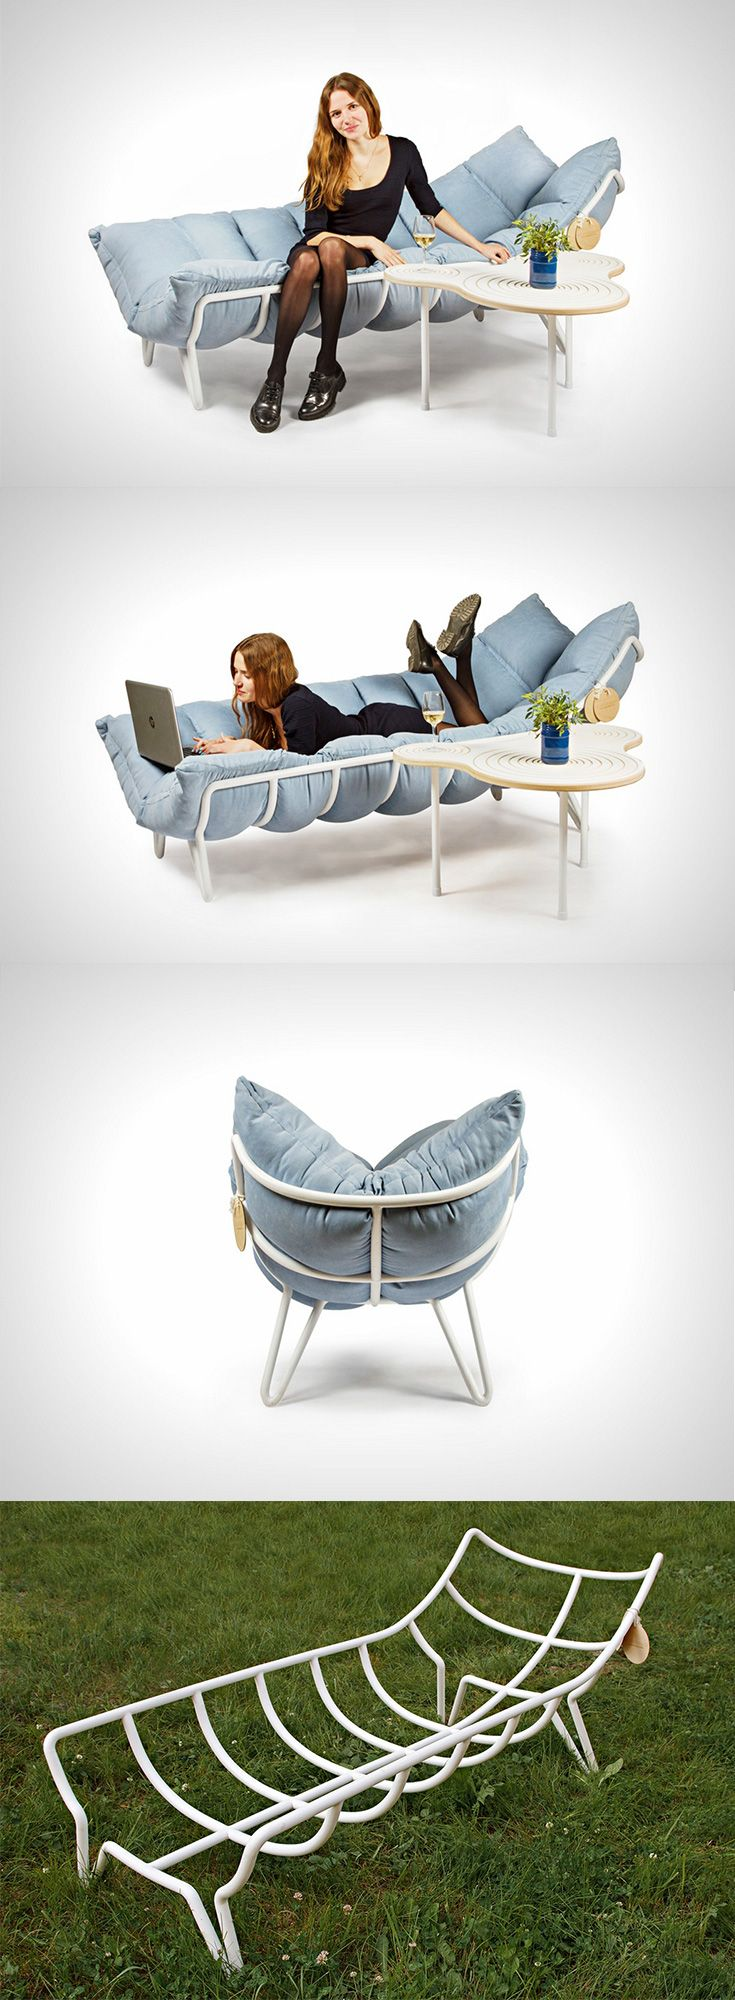 The \u0027Inchworm Shezlong\u0027 (Chaise-Lounge) is a chair which is just a ...